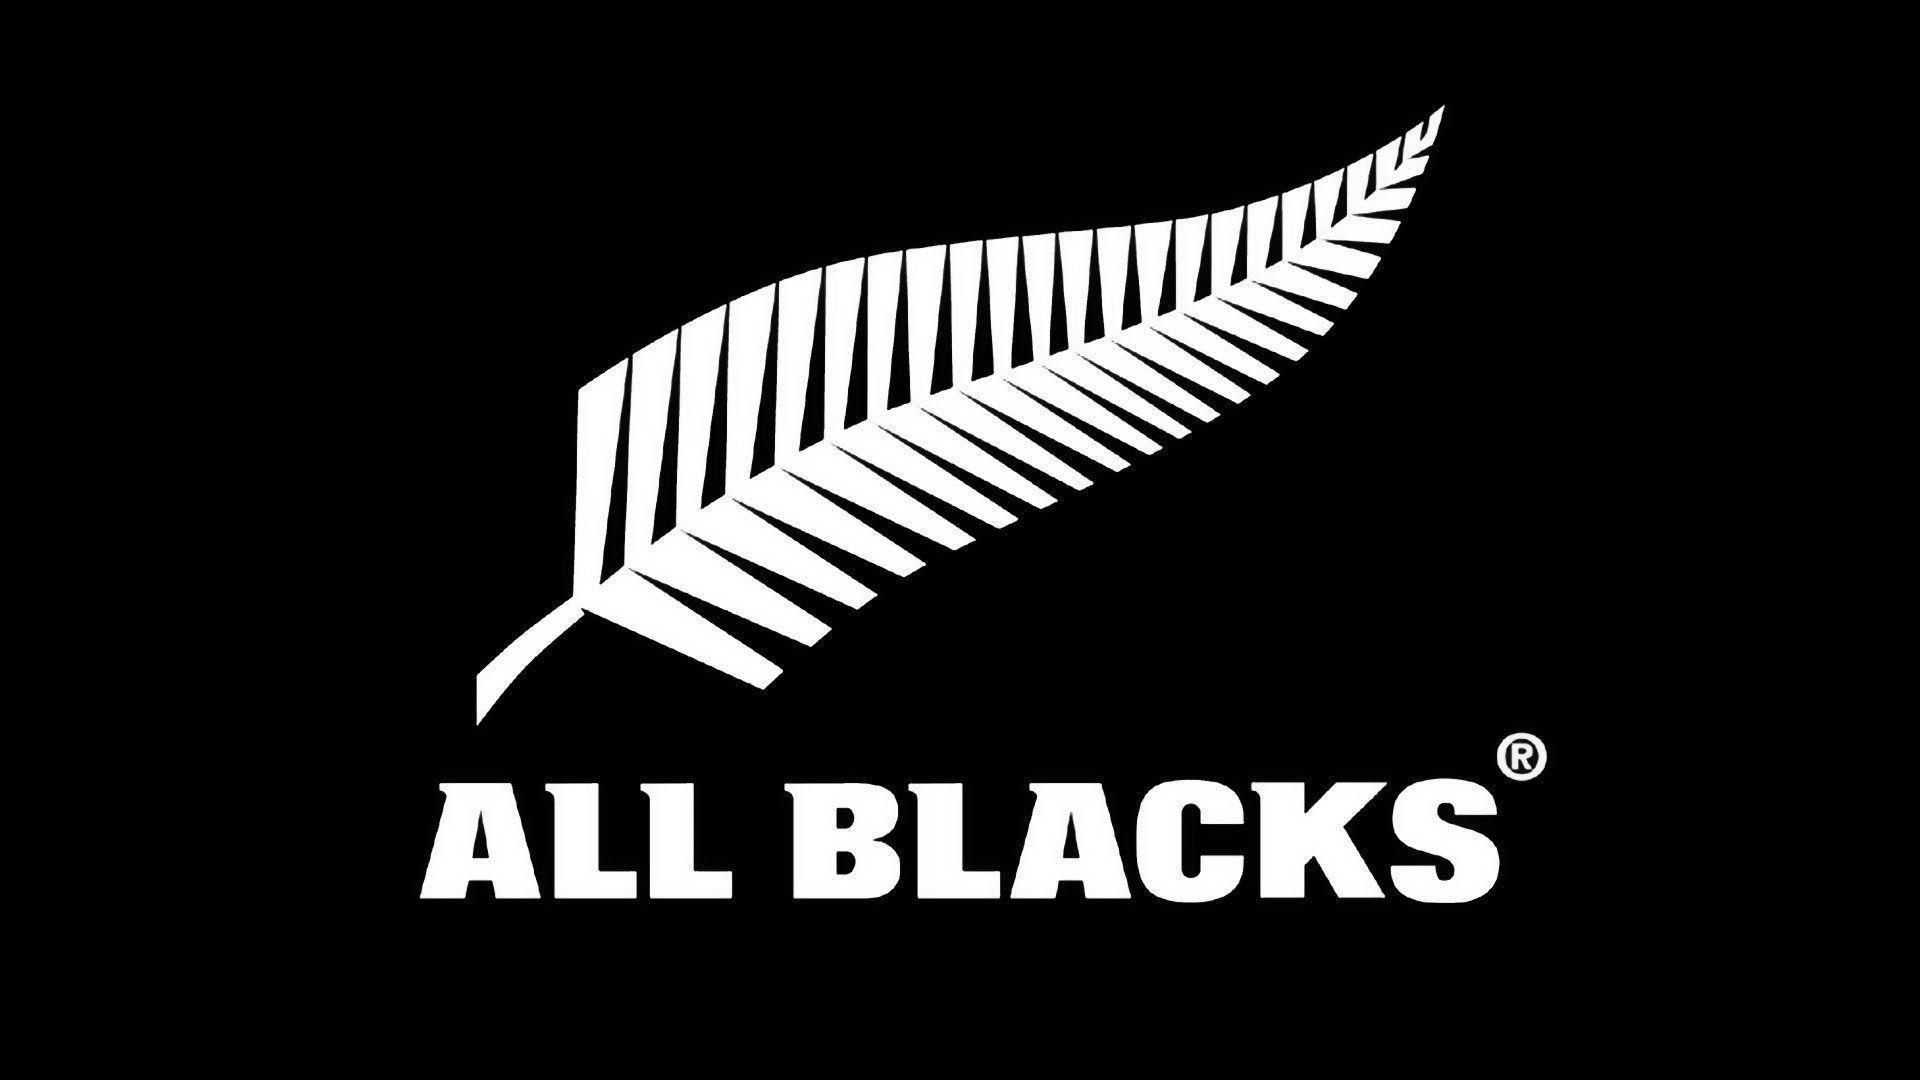 Free New Zealand All Black Rugby HD Backgrounds